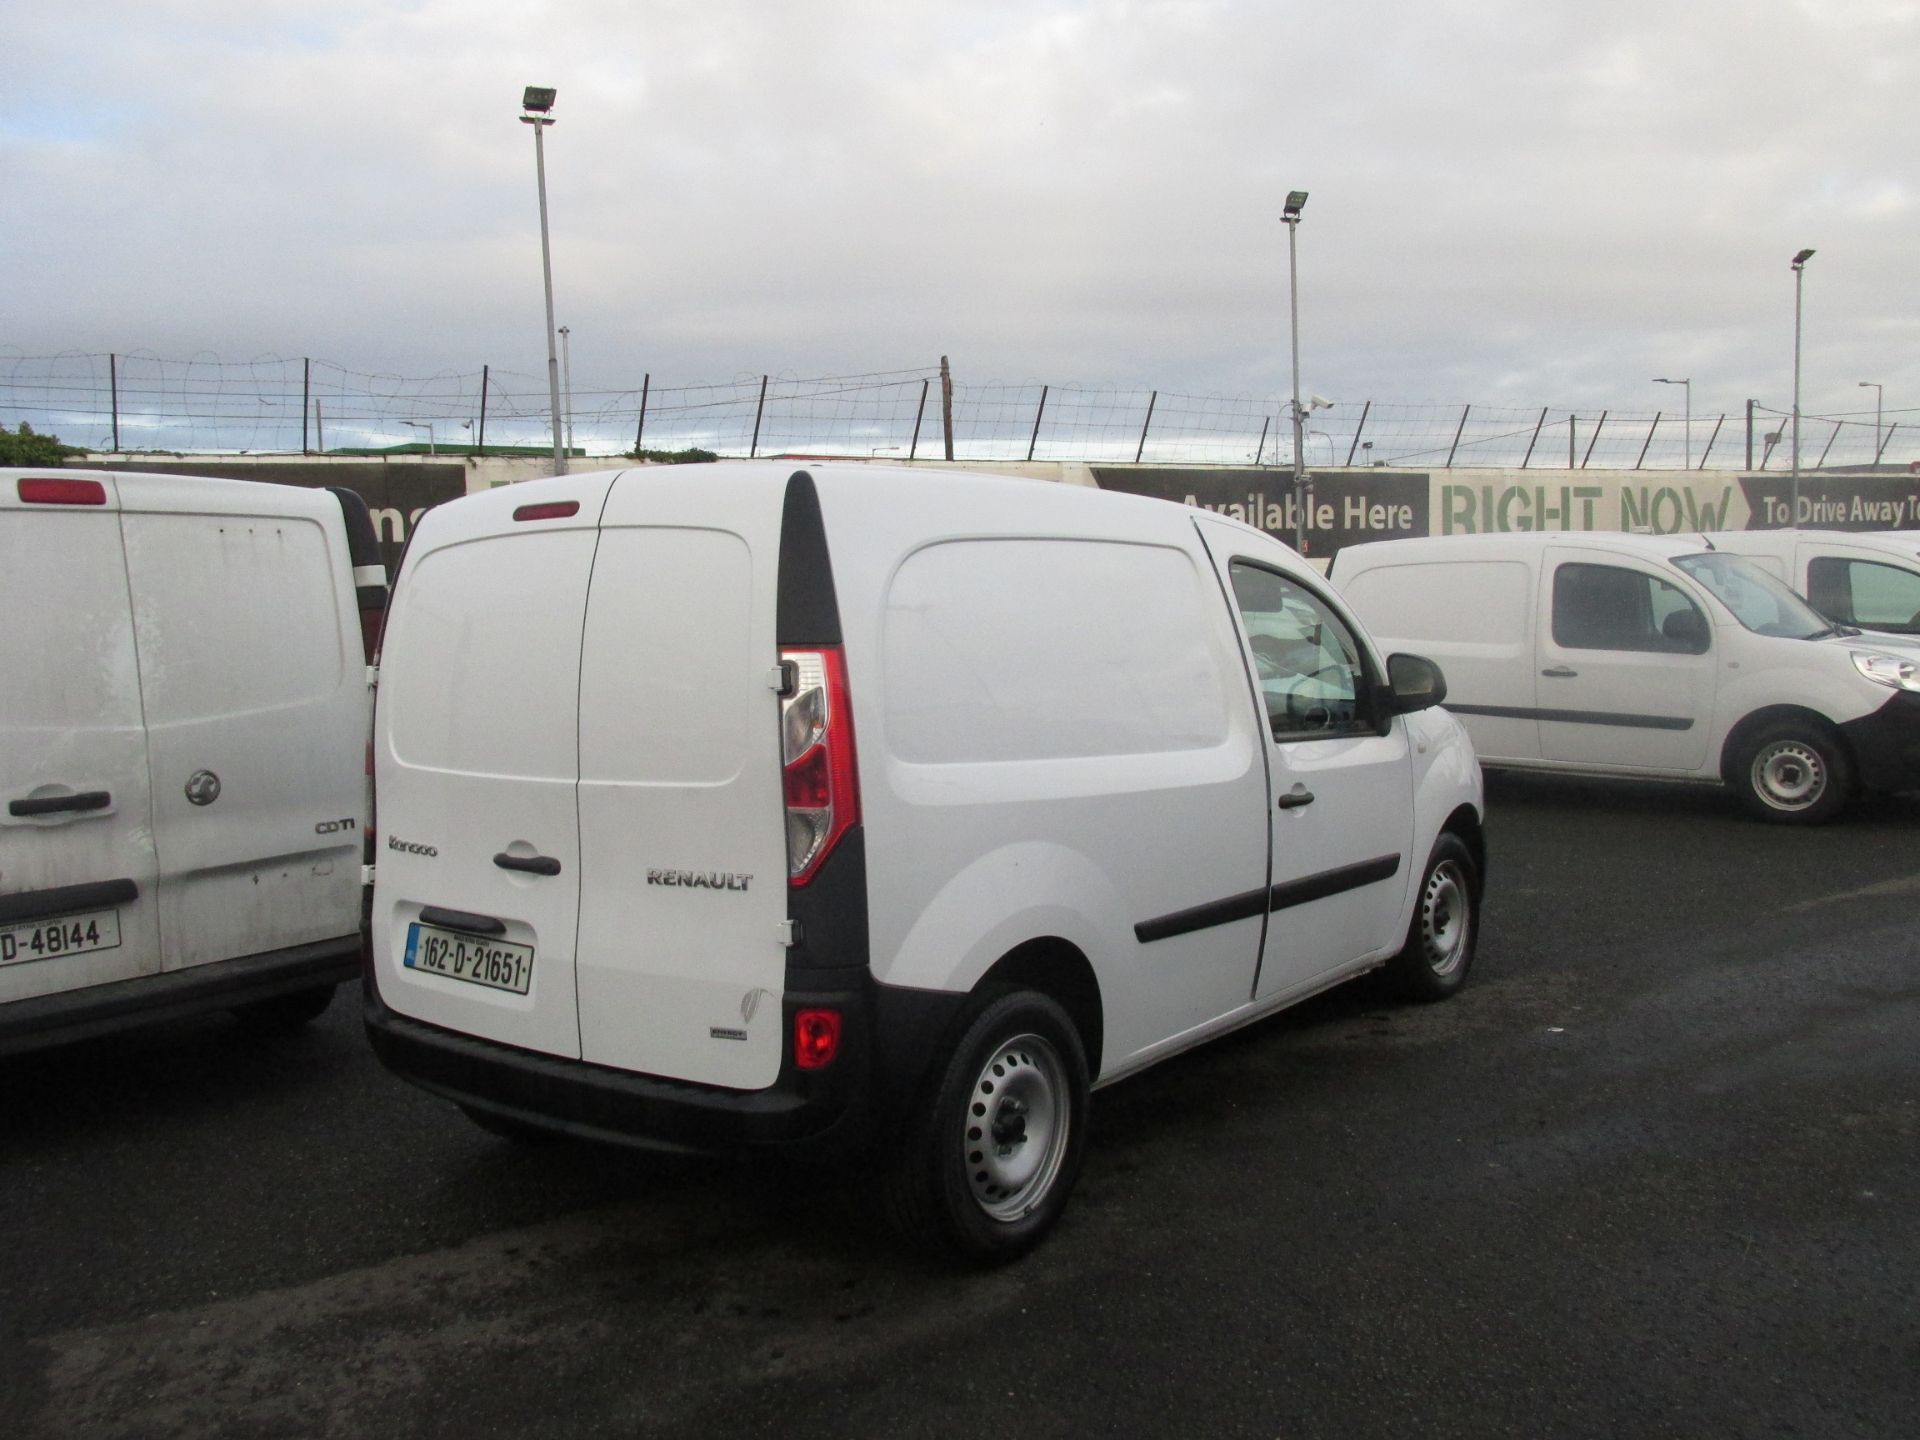 2016 Renault Kangoo ML19 Energy DCI 75 Business 2D - 100 VANS TO VIEW IN VM SANTRY DUBLIN - (162D21651) Image 3